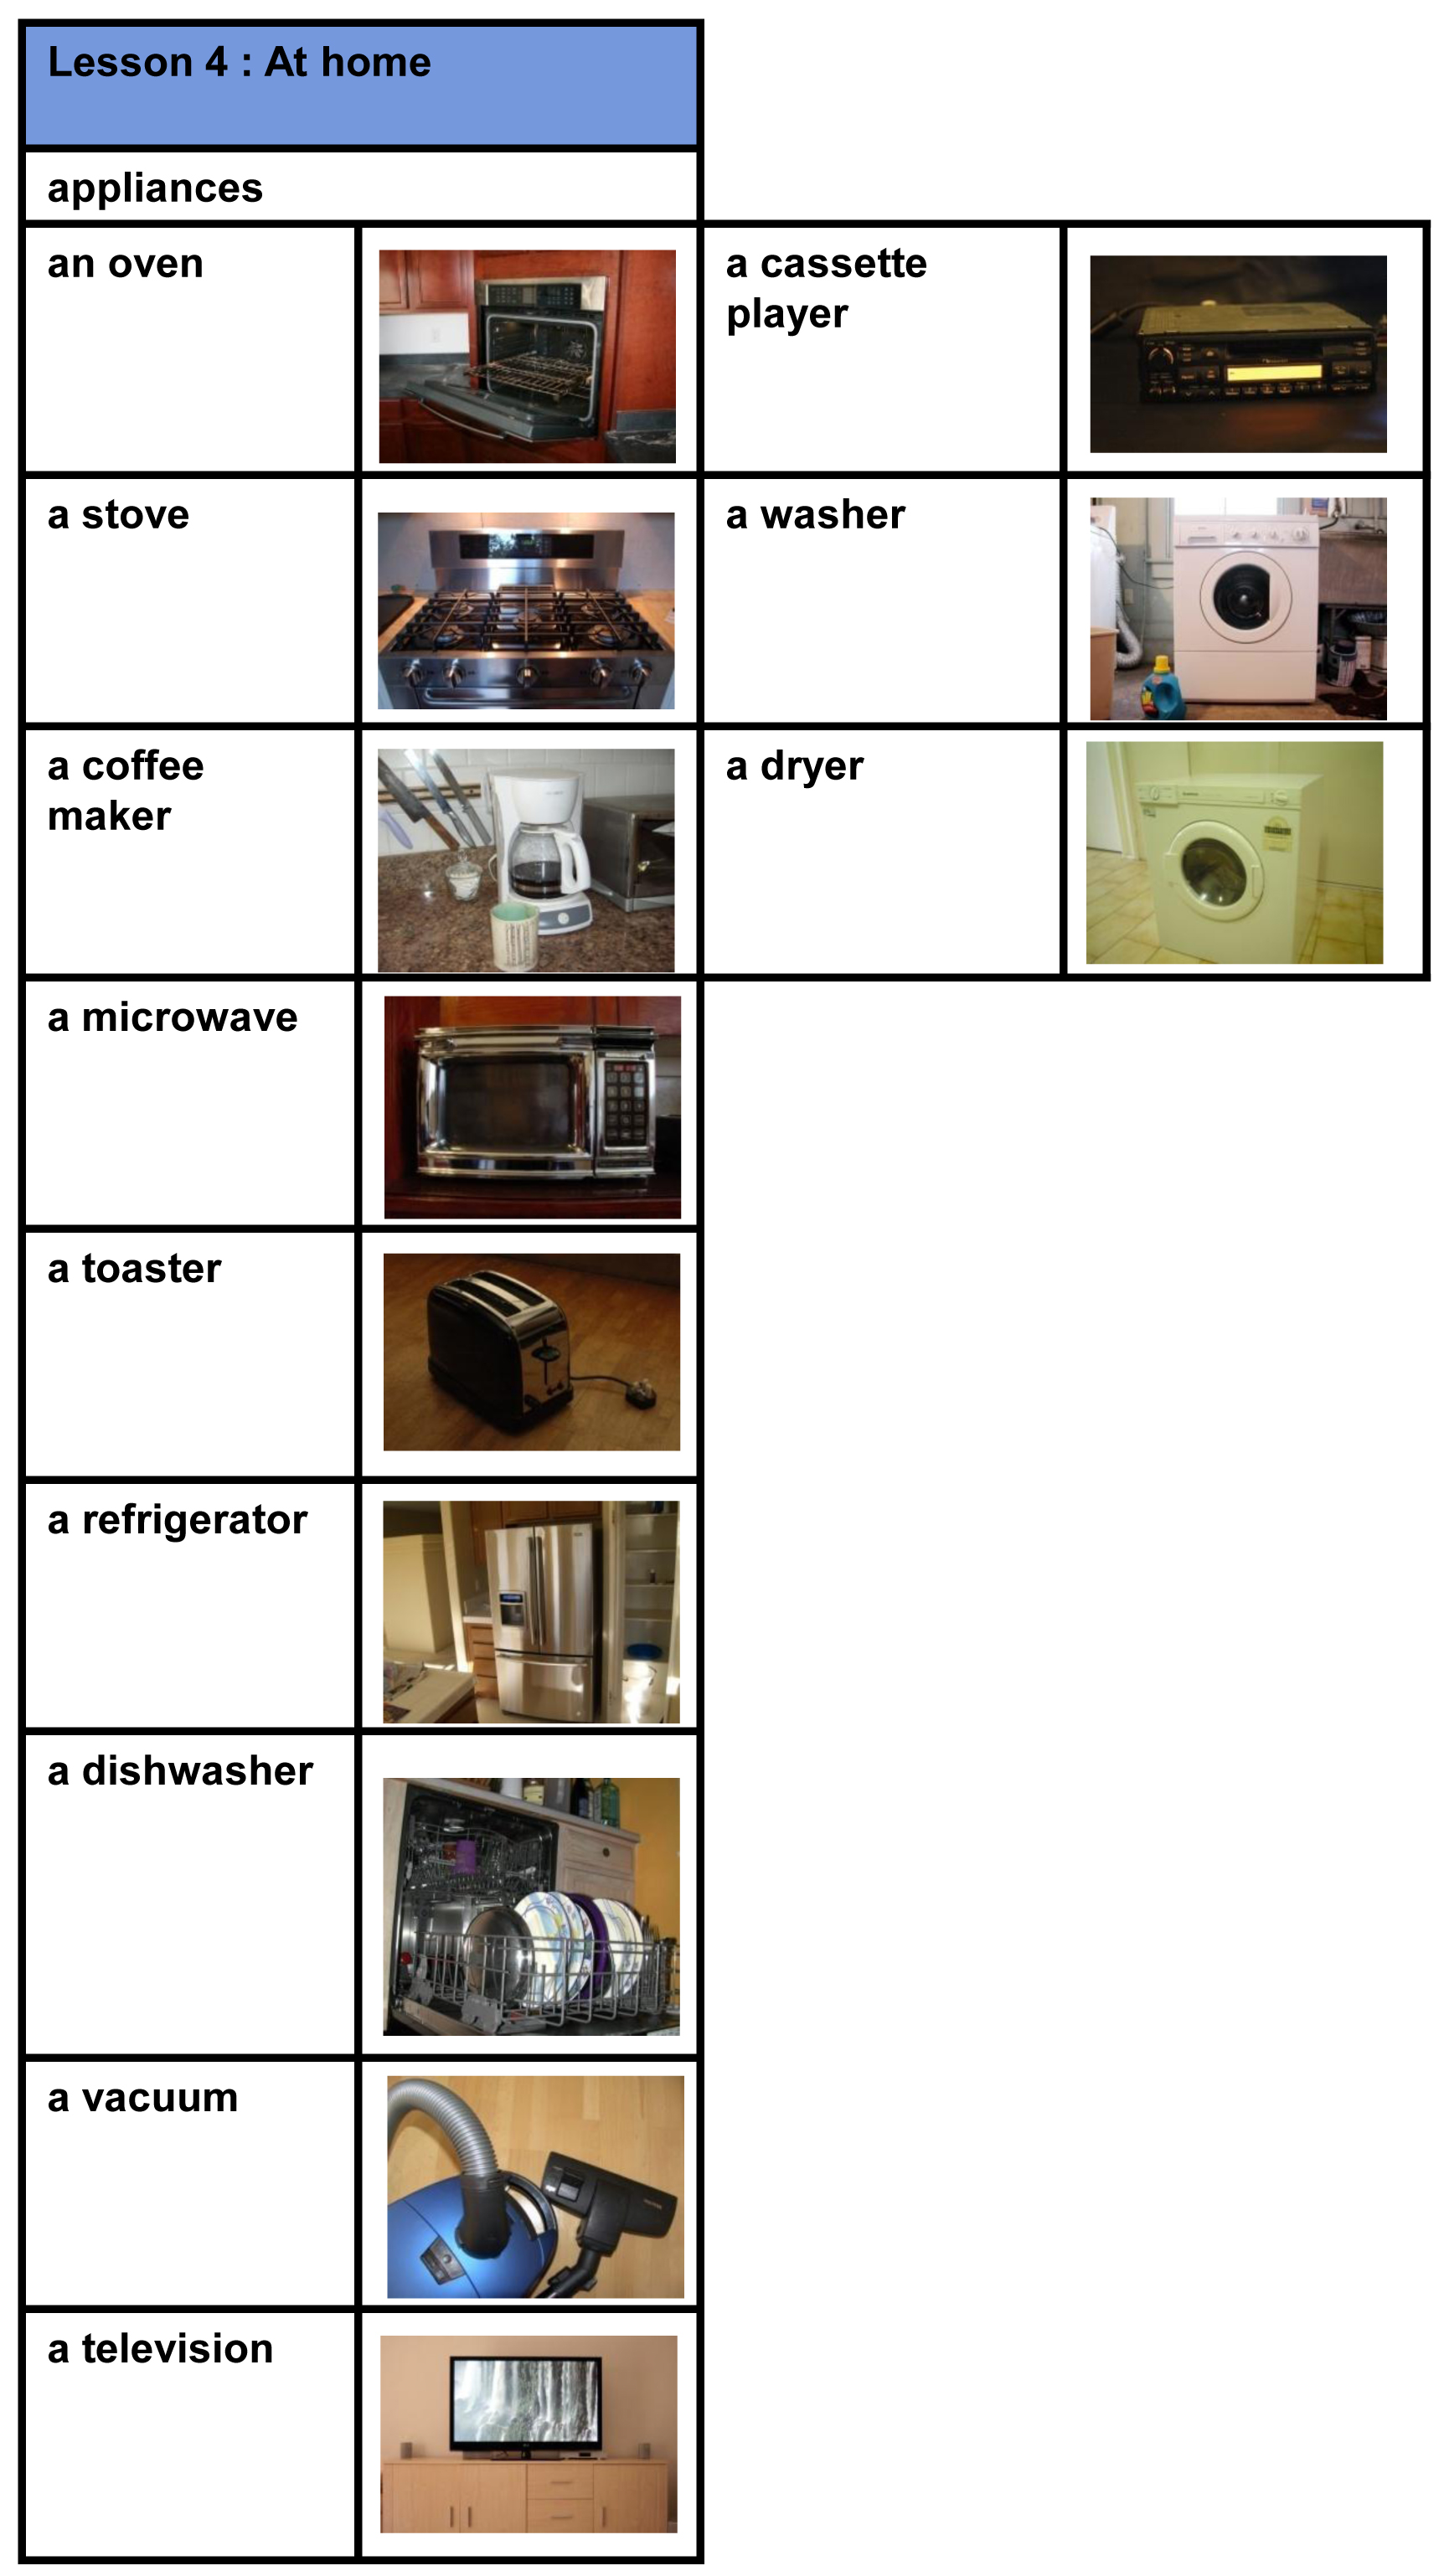 appliances_vocabulary_2_1